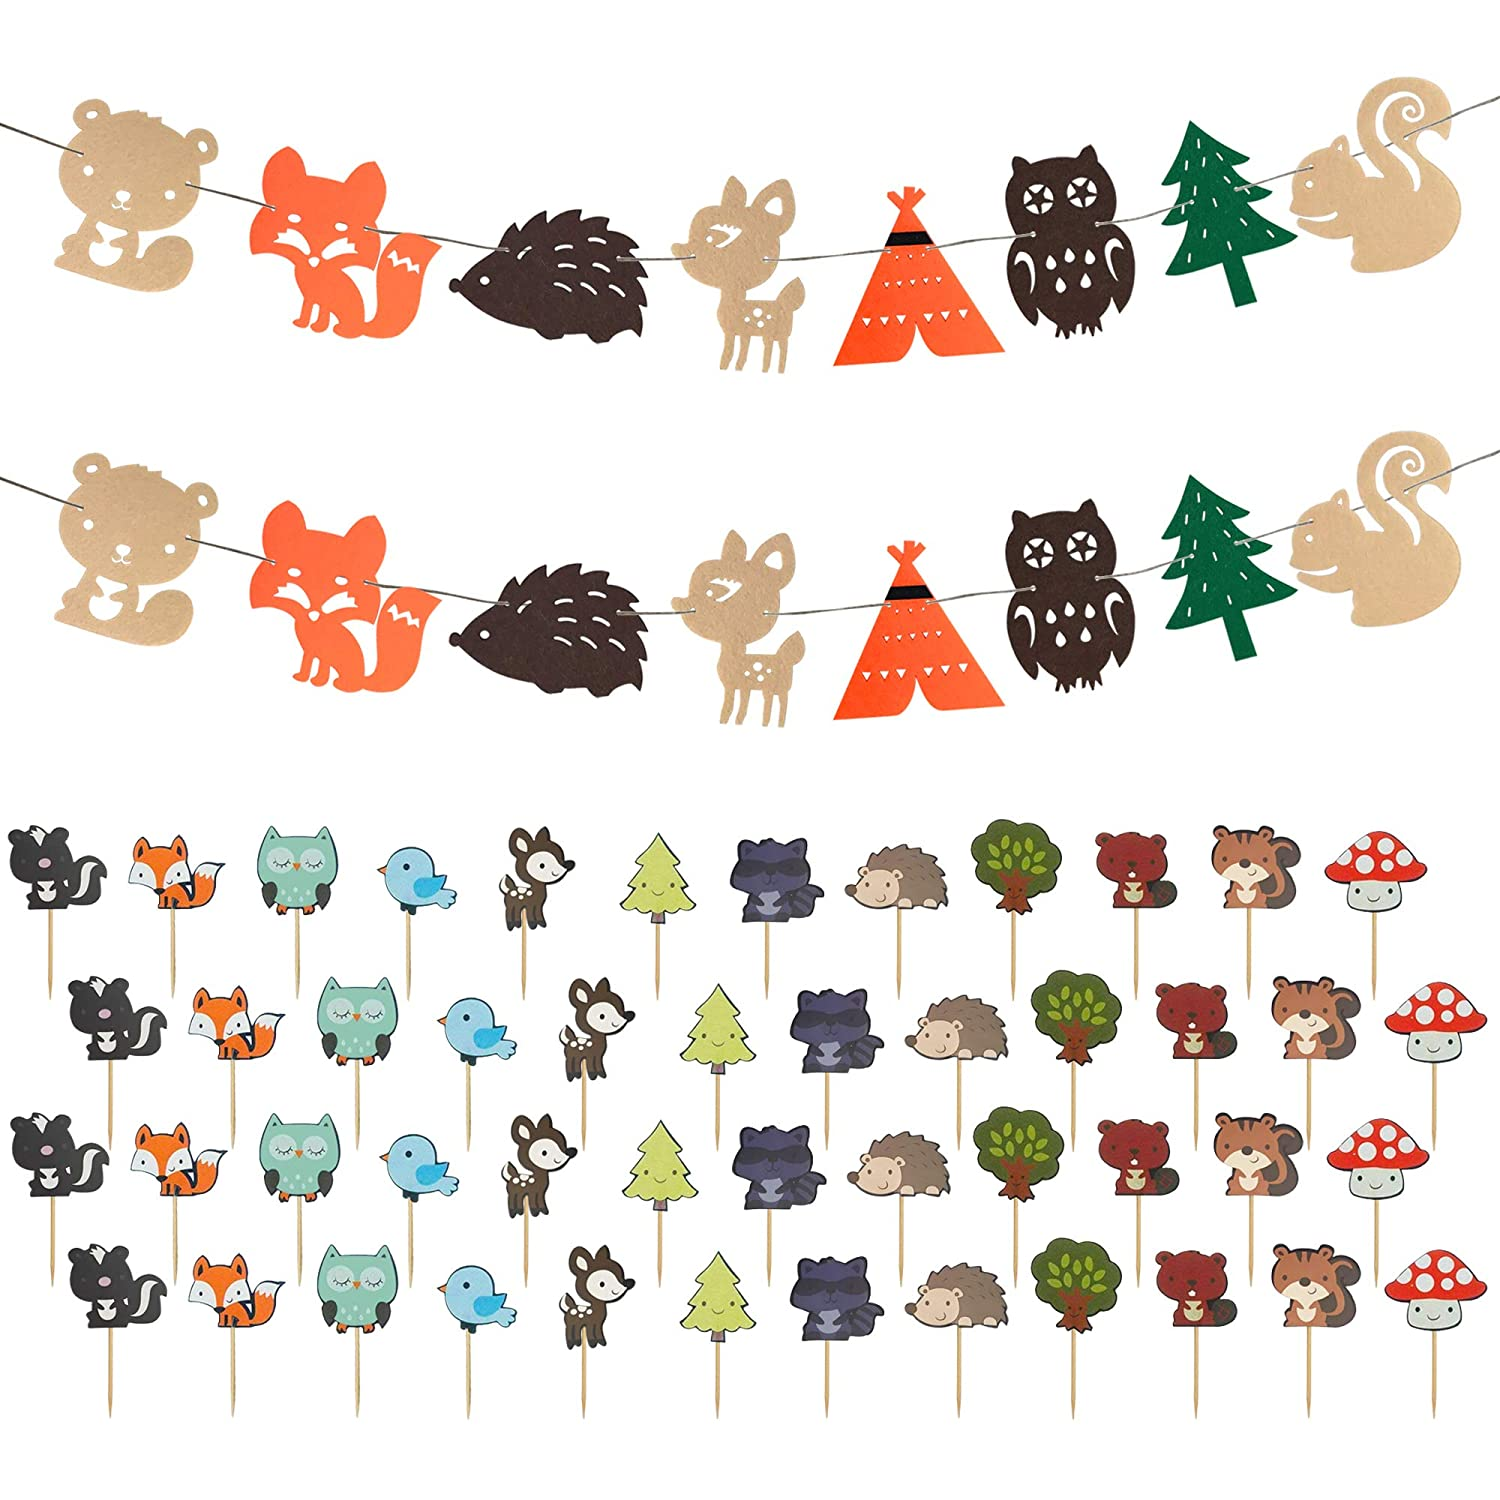 Picture of different animals in the forest